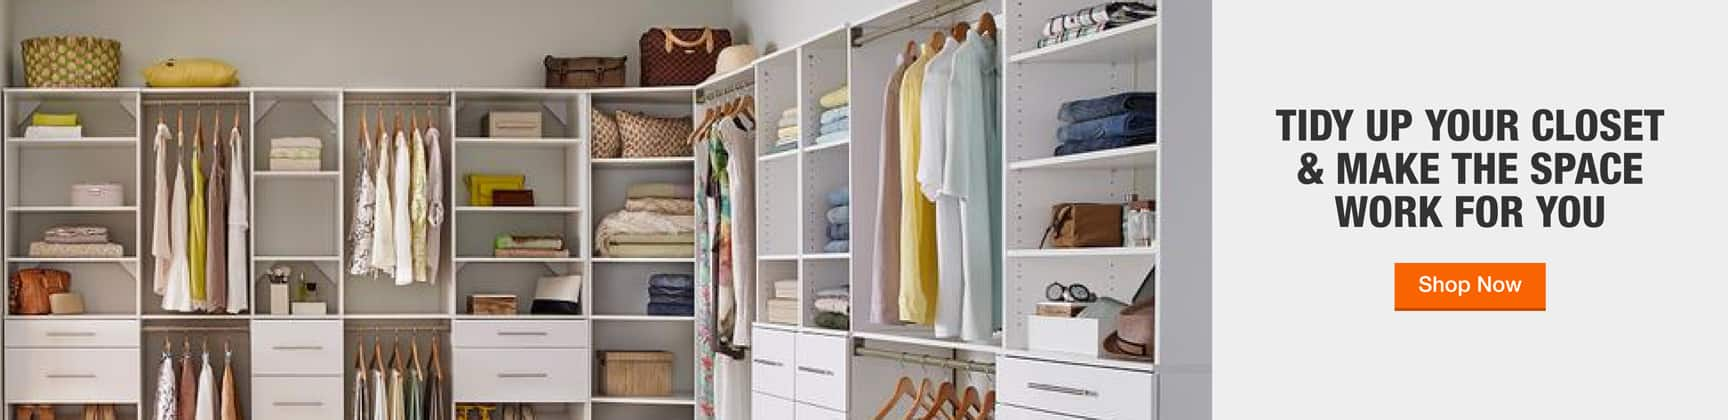 TIDY UP YOUR CLOSET  & MAKE THE SPACE  WORK FOR YOU